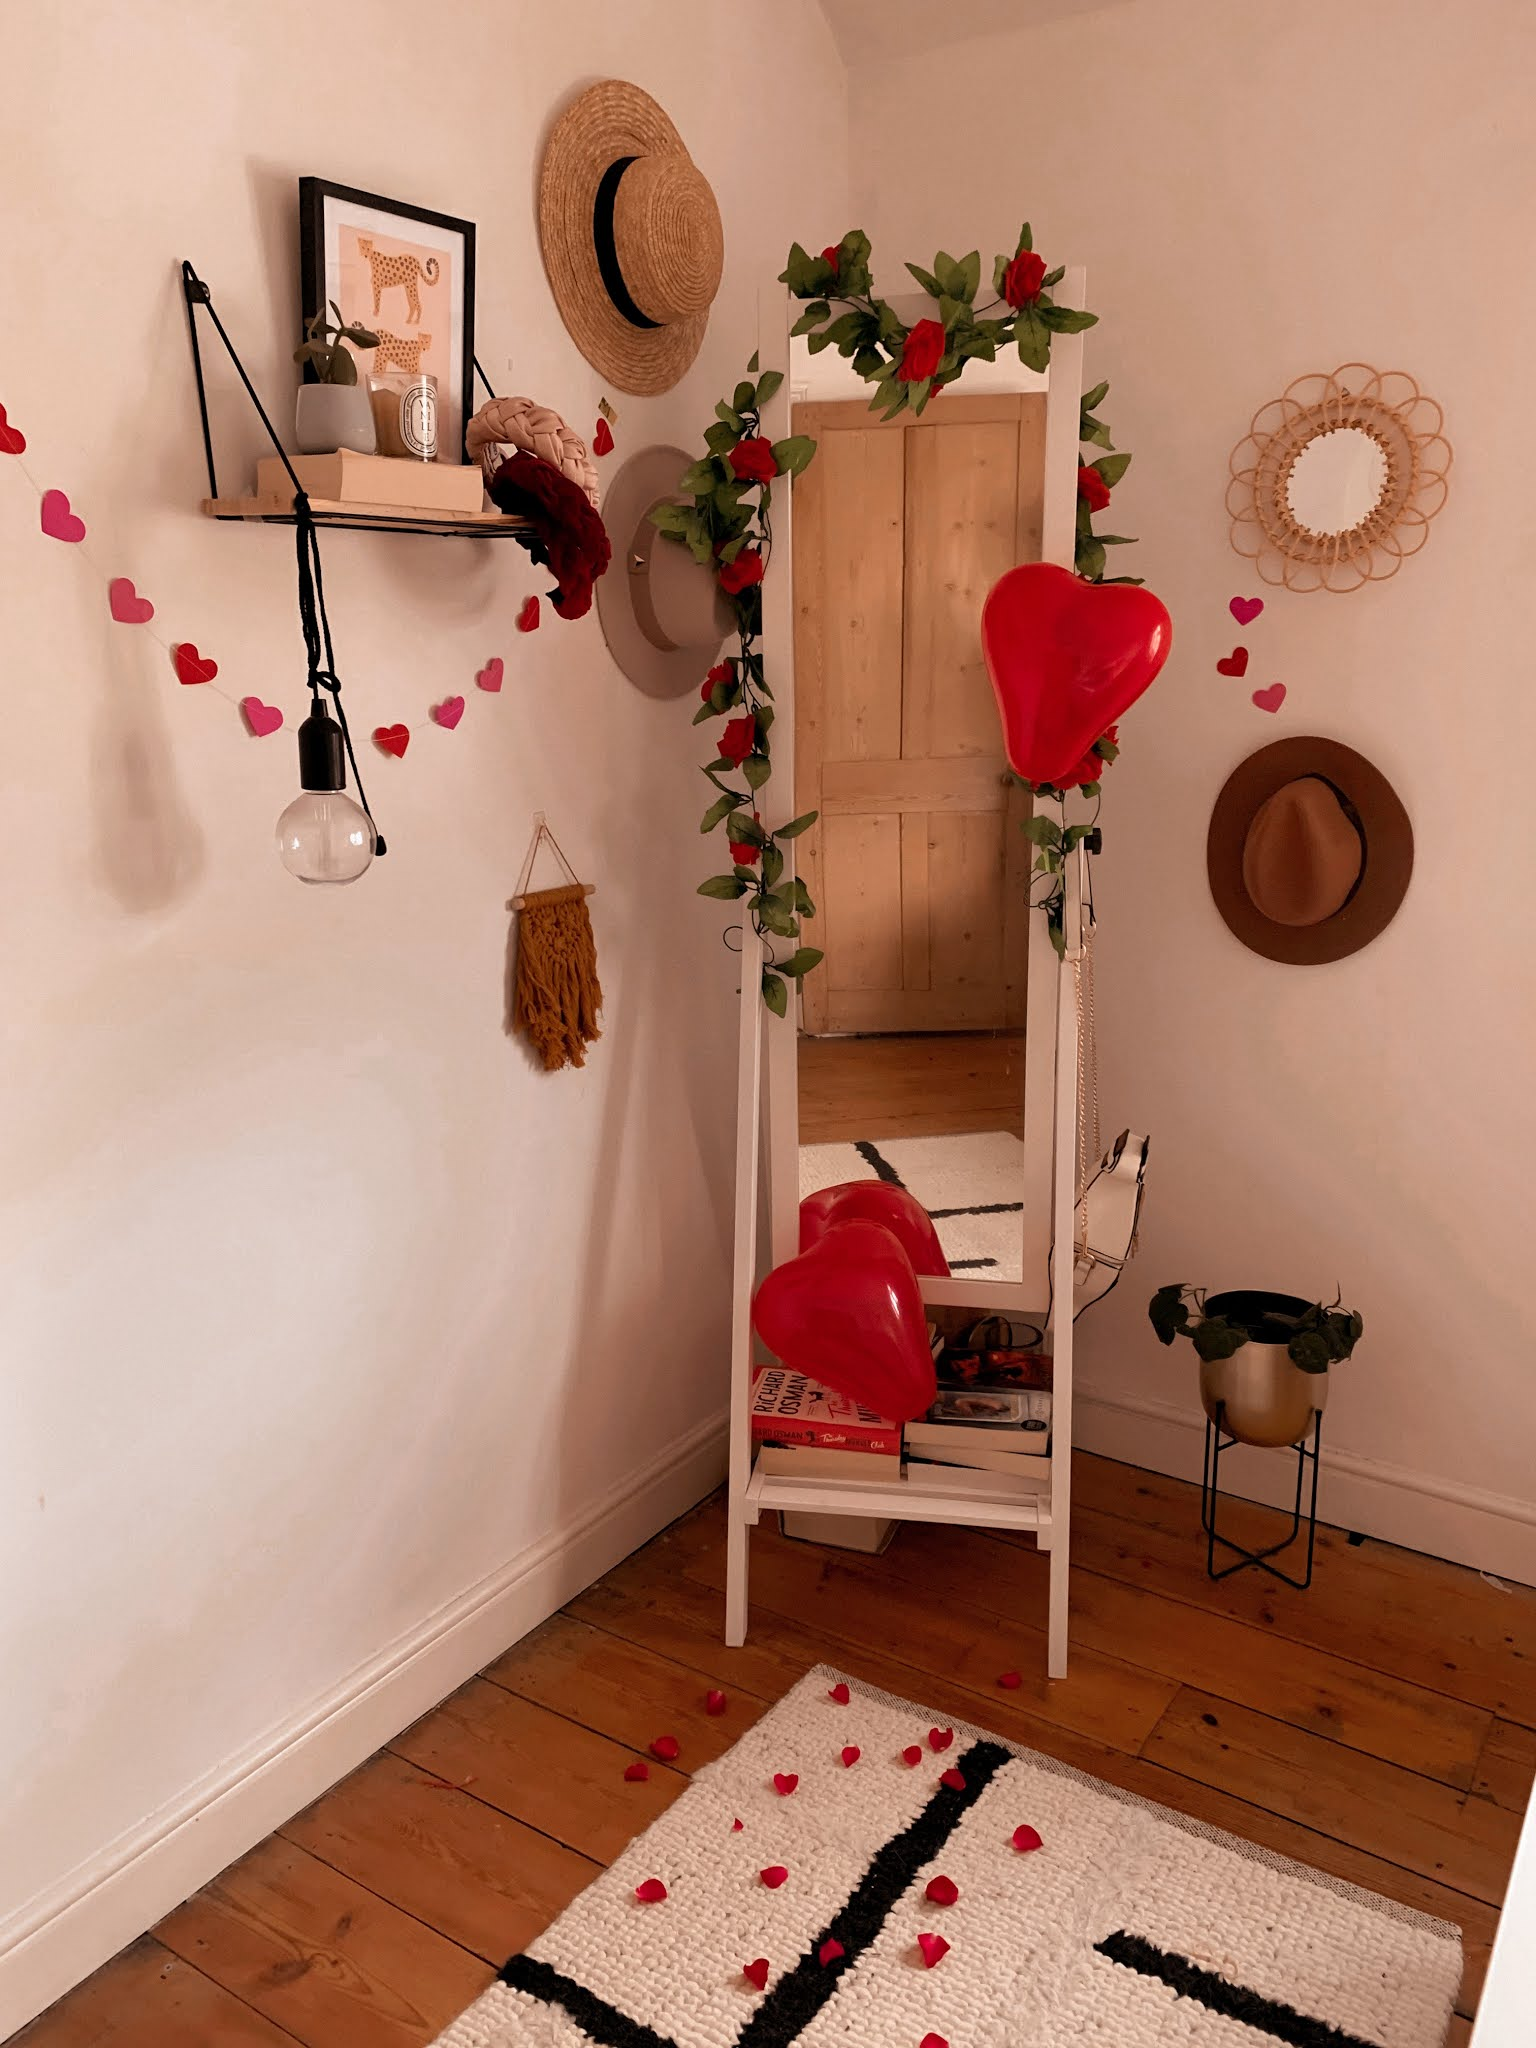 Amazon Valentine's Day Home Decorations